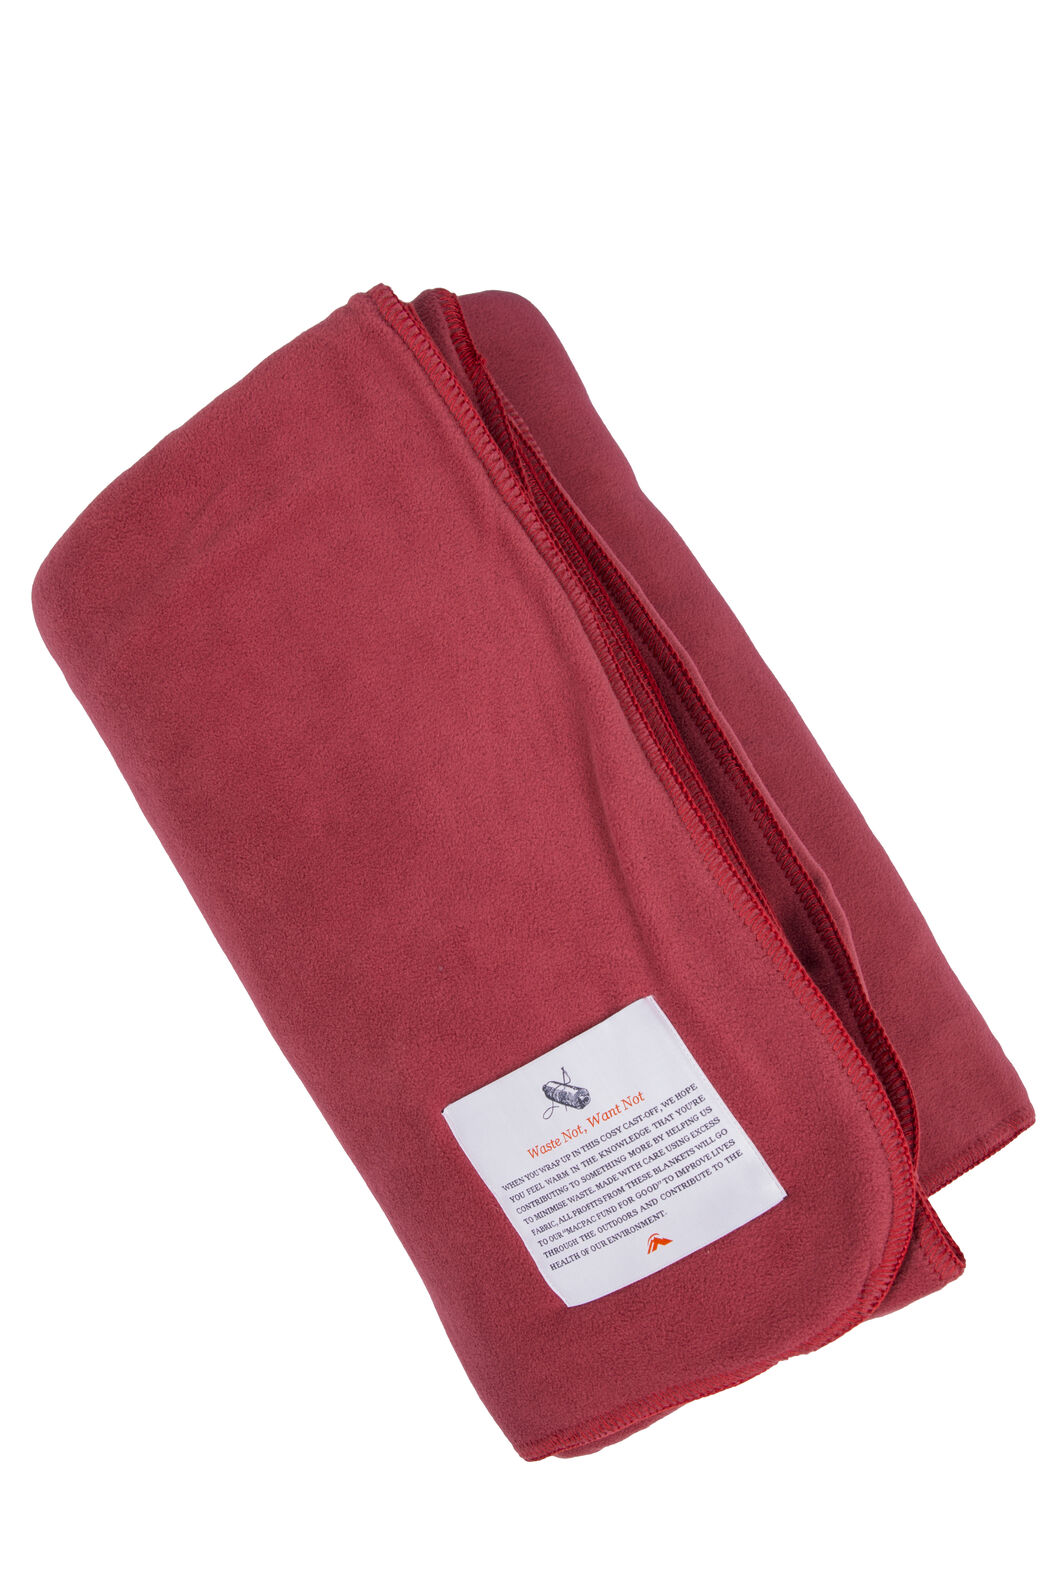 Macpac Fund for Good Blanket - Small, Assorted, hi-res